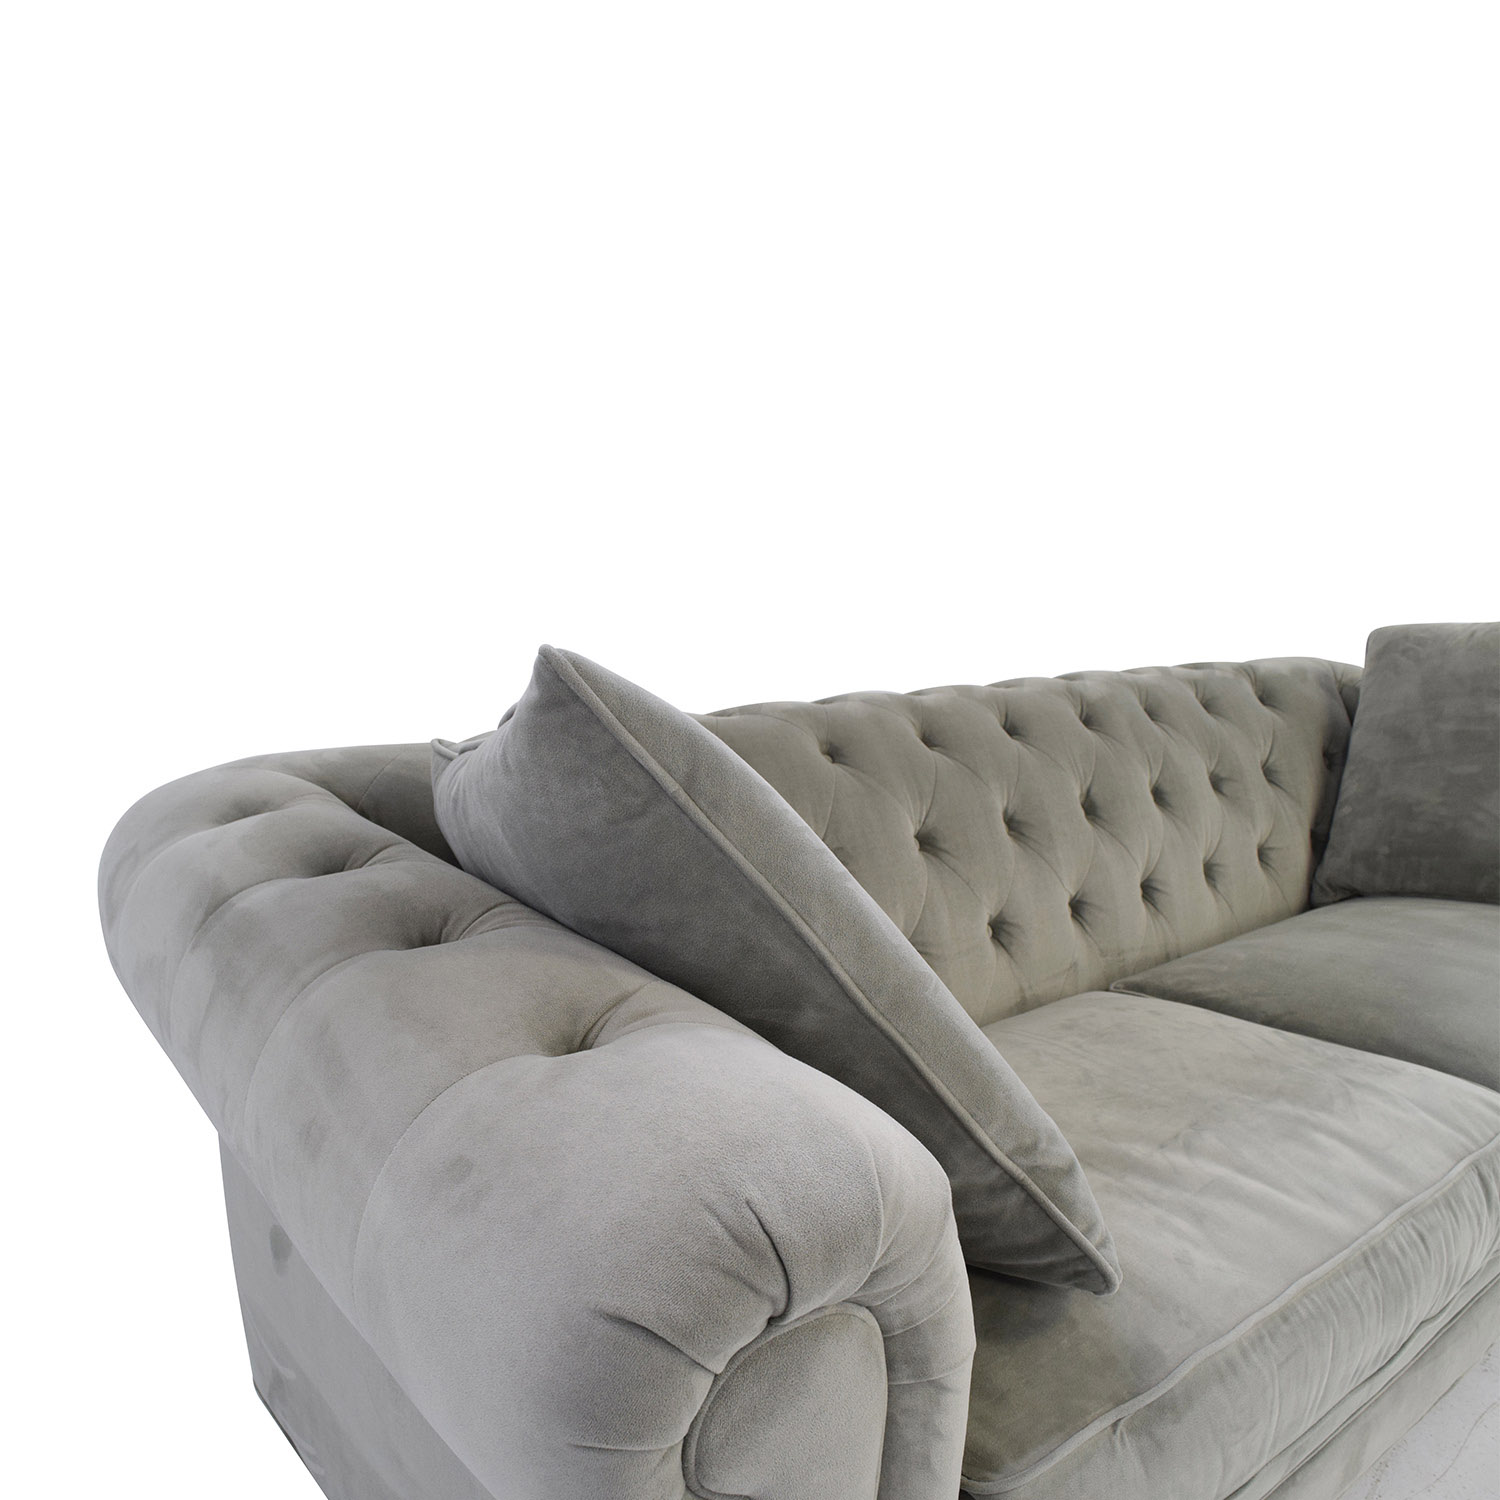 Saybridge sofa macys for Second hand schlafsofa